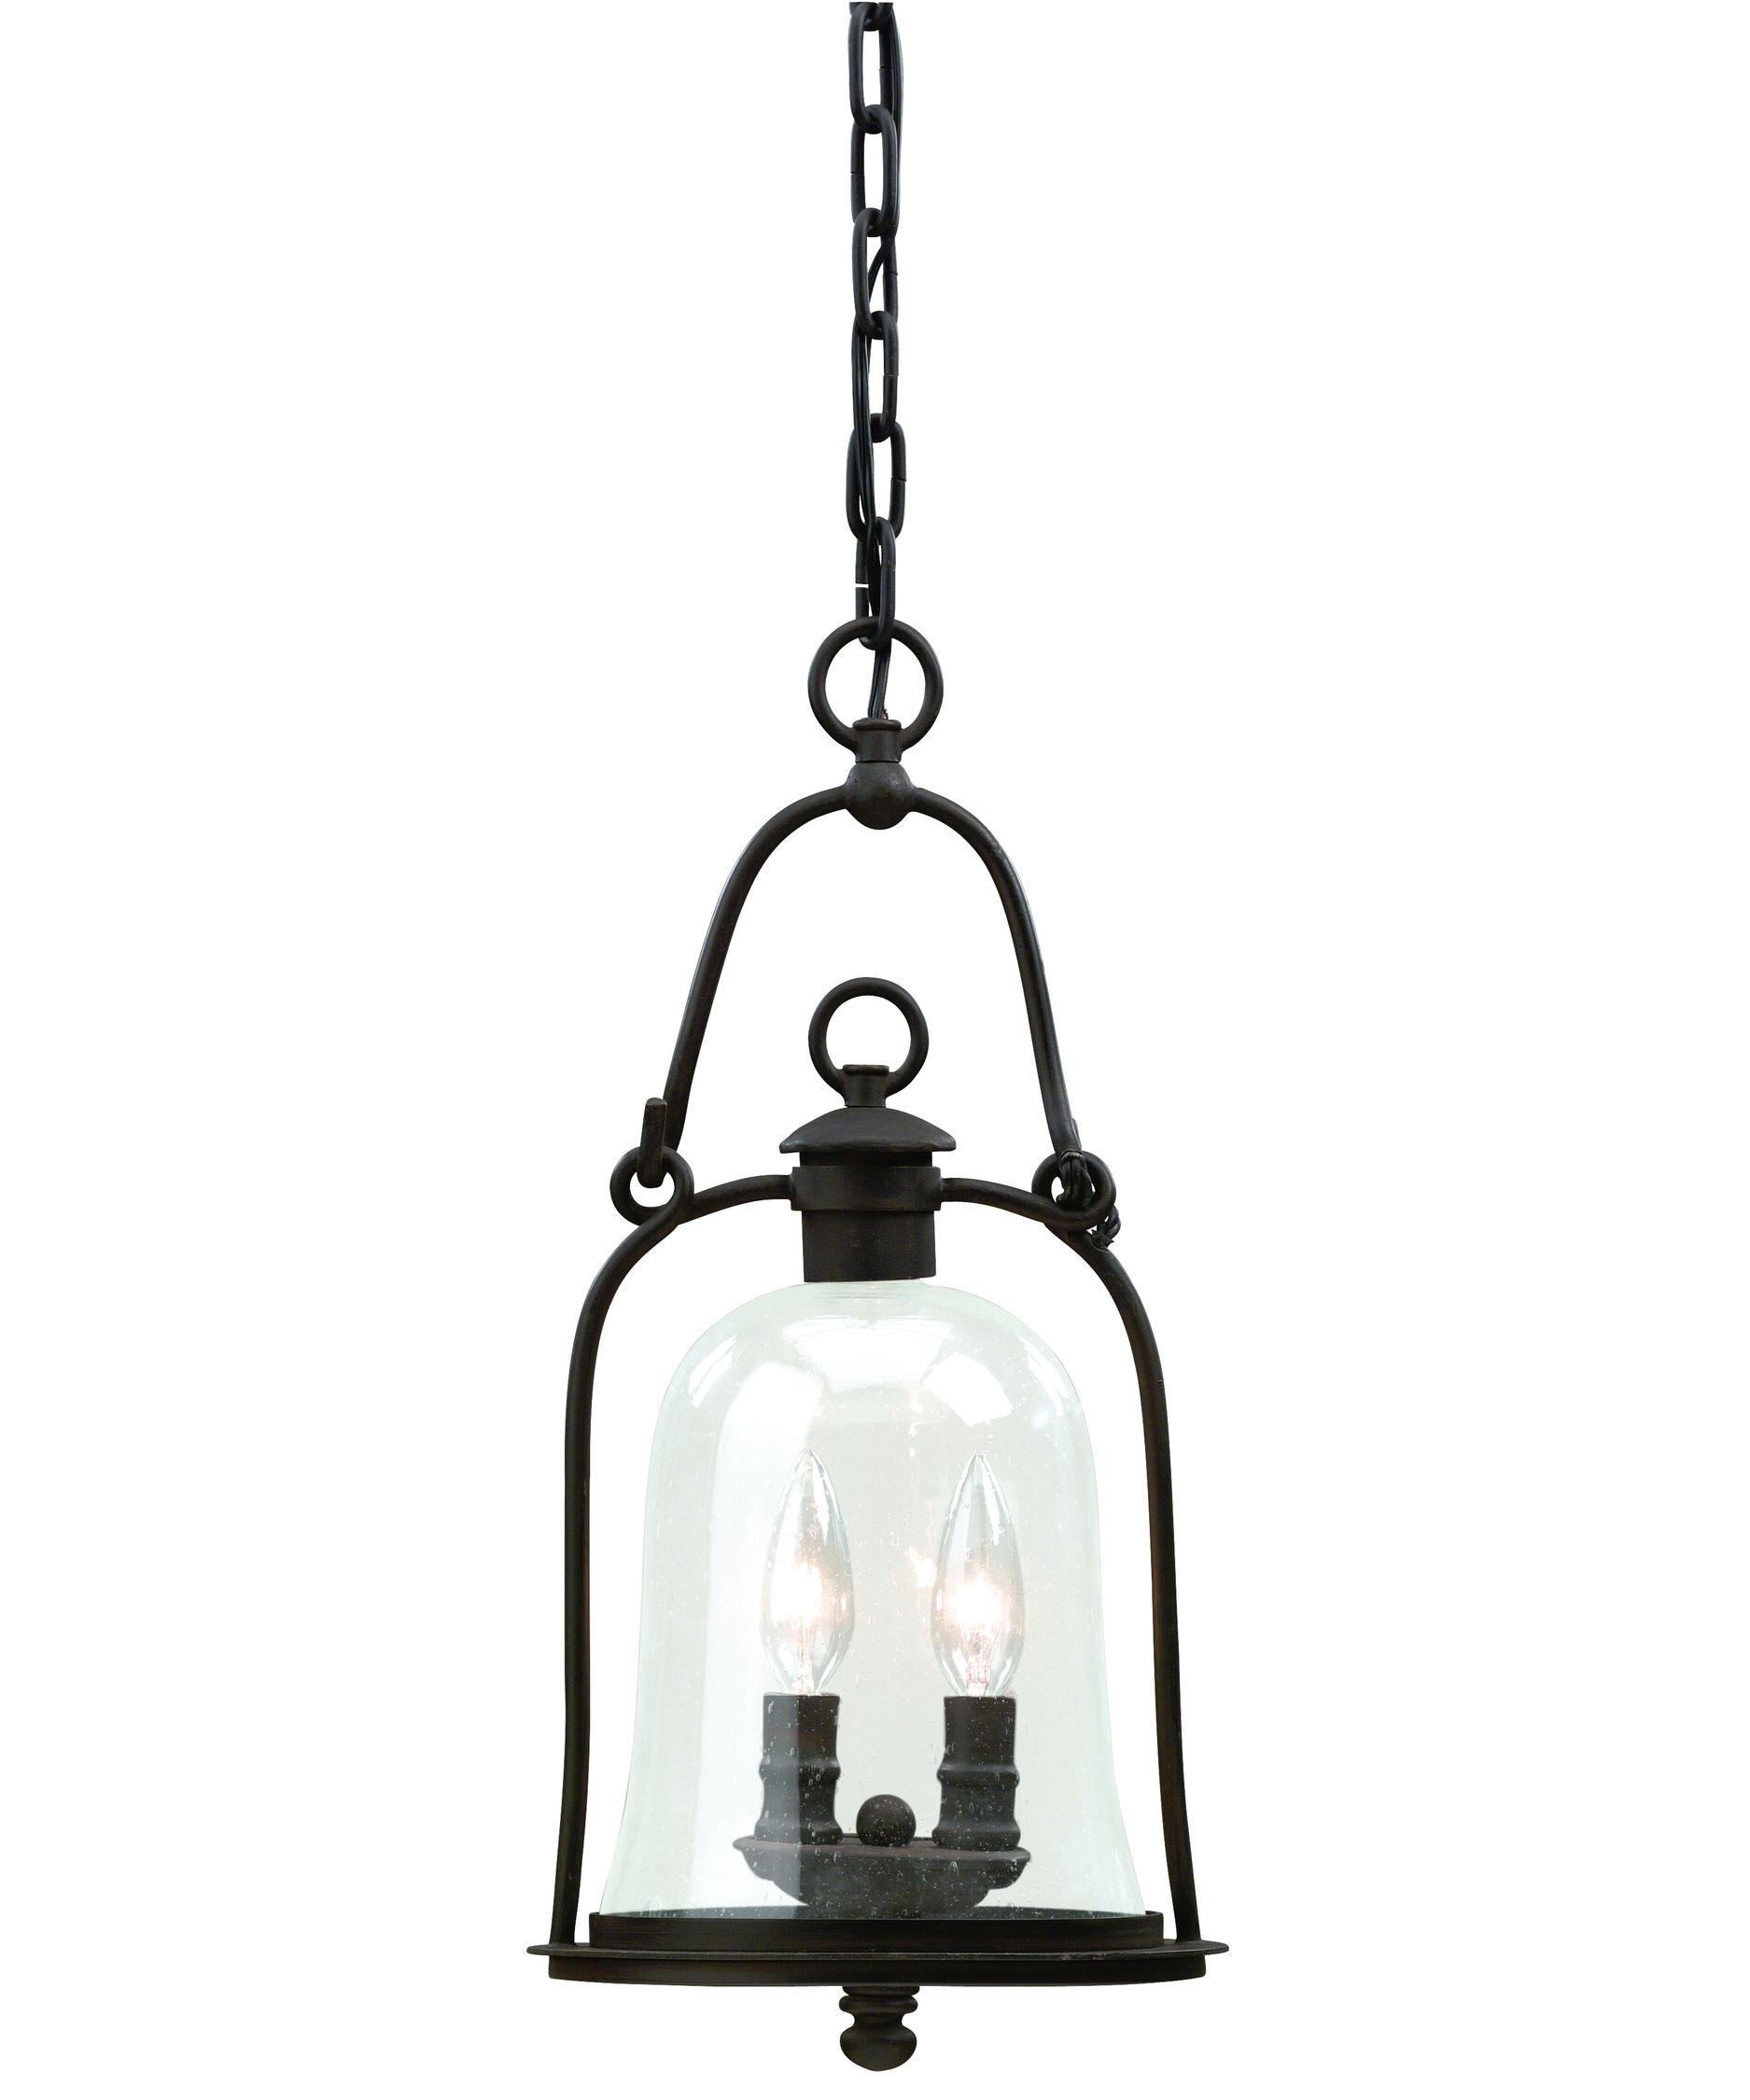 Outdoor hanging lamp - Shown In Natural Bronze Finish And Clear Seeded Glass